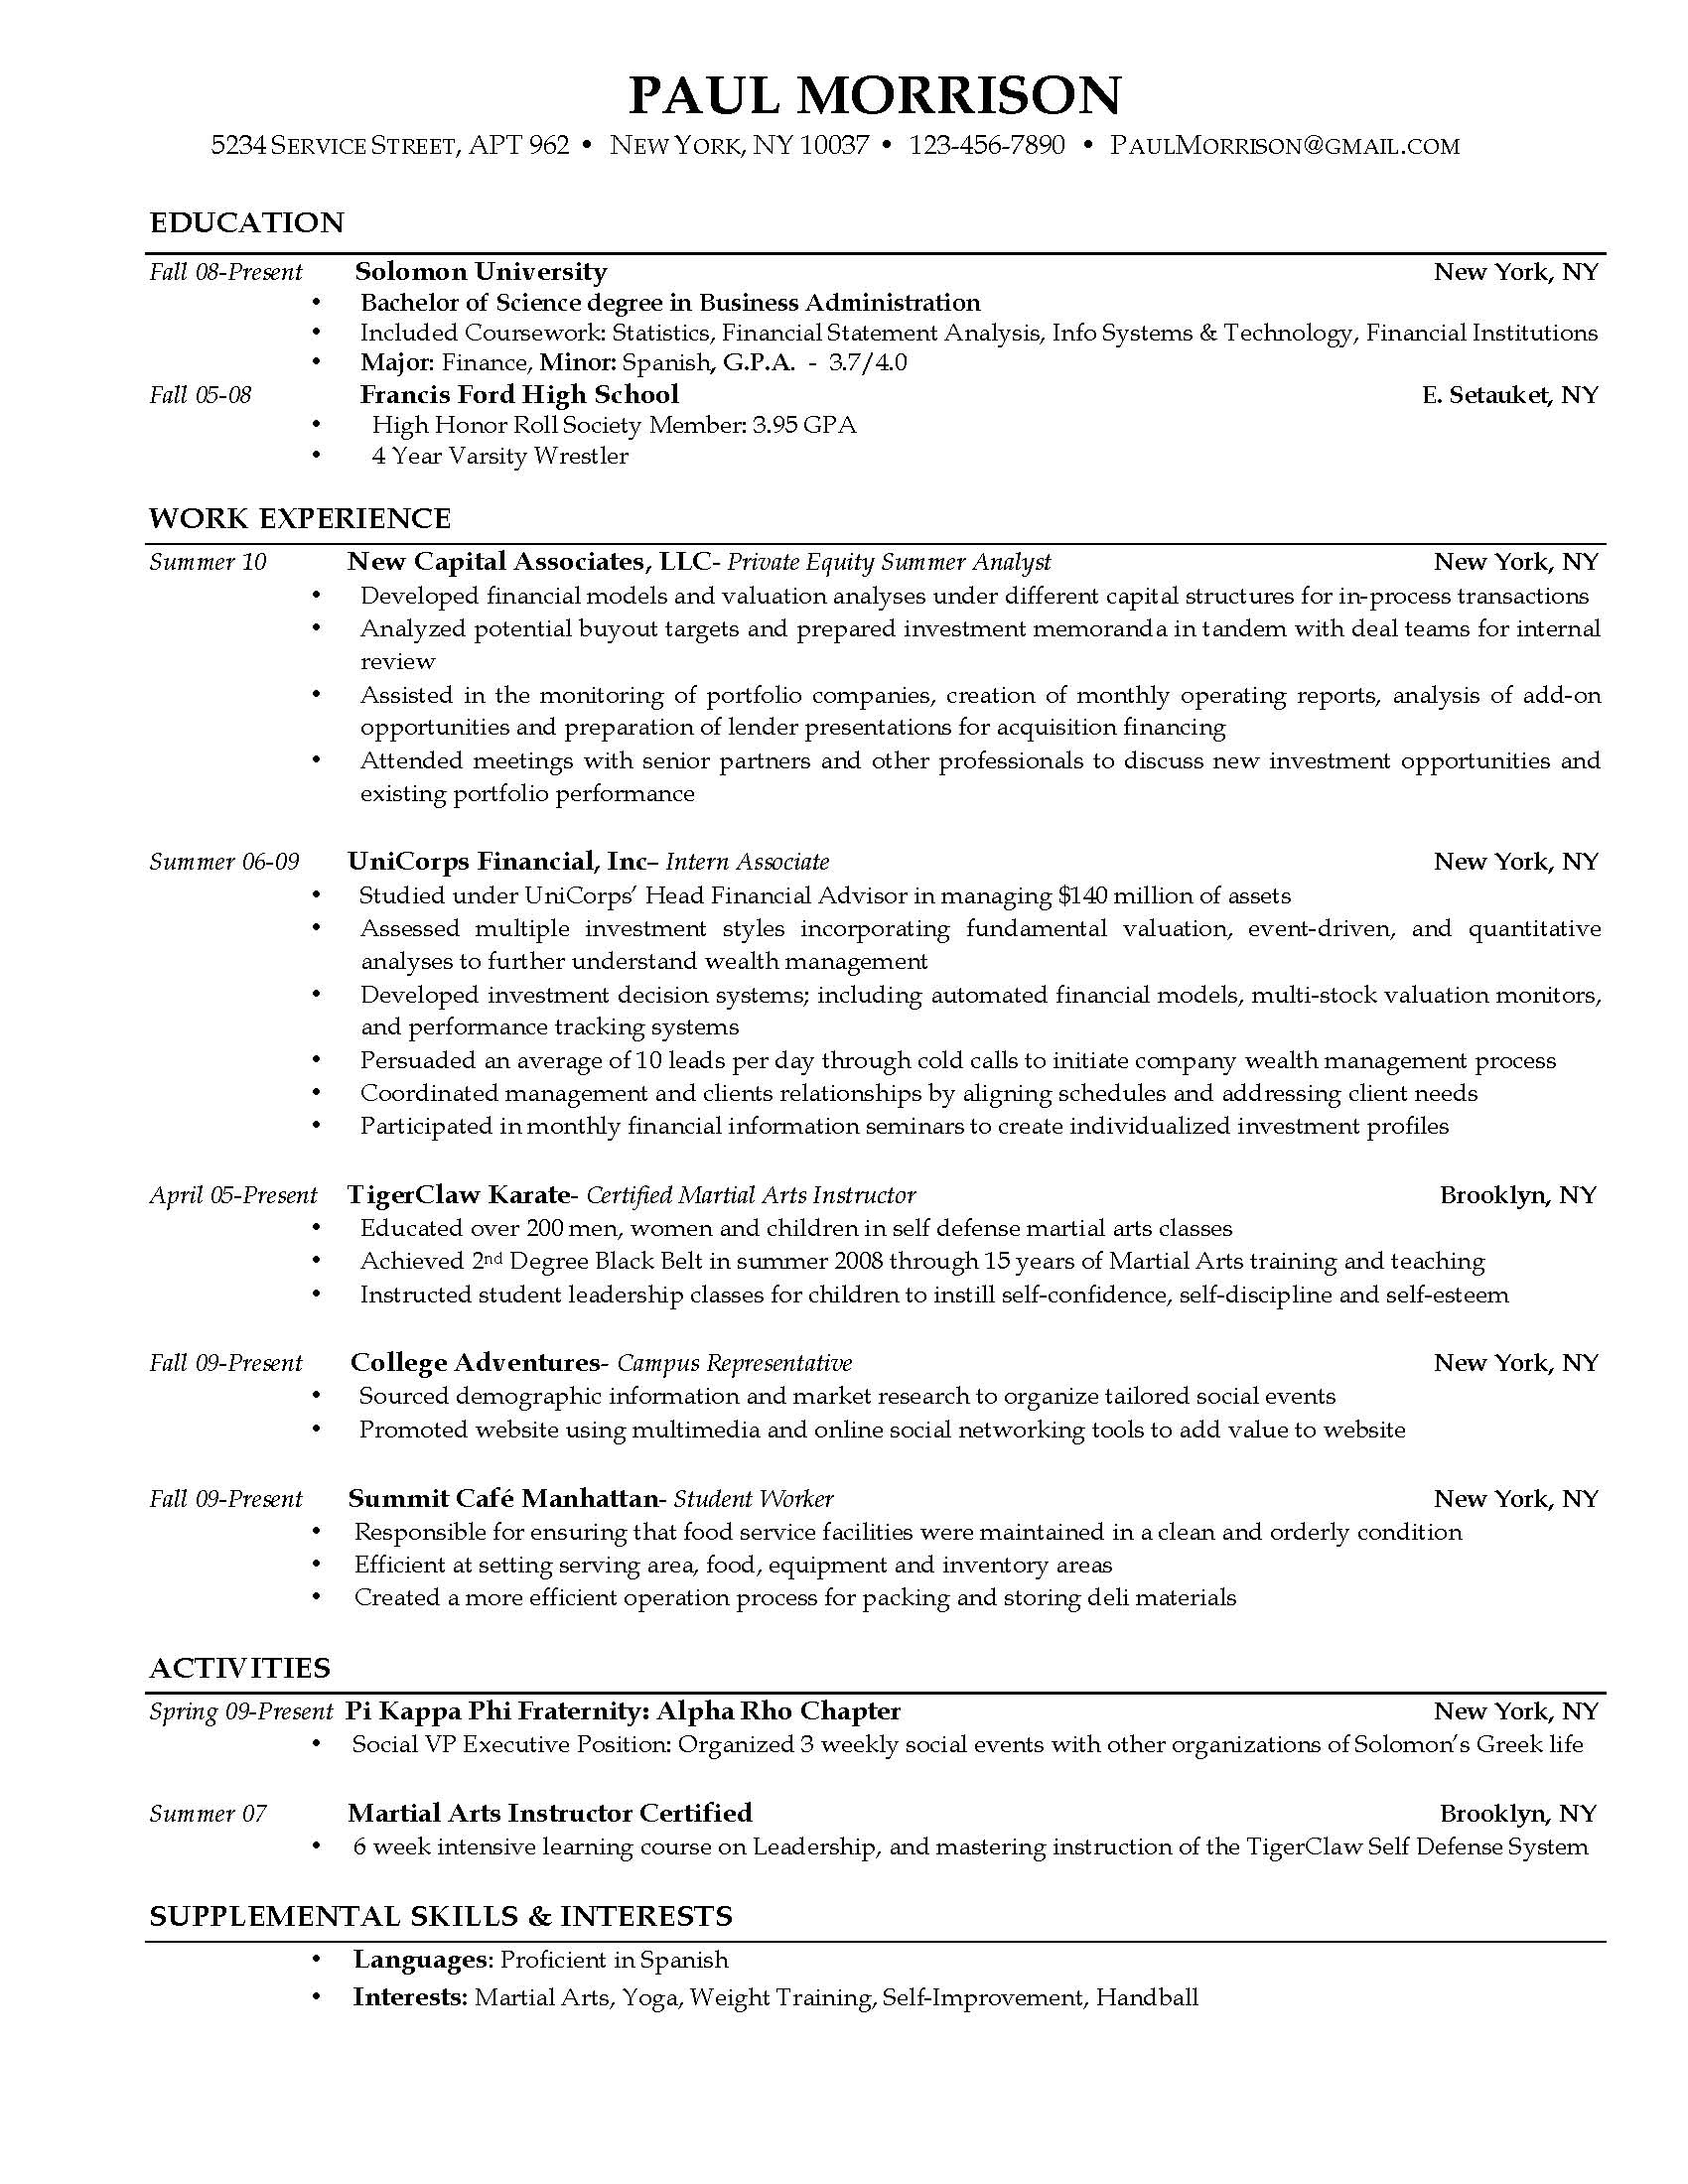 resume education current student cover letter resume examples resume education current student education world writing a good resume student exercise here is an example